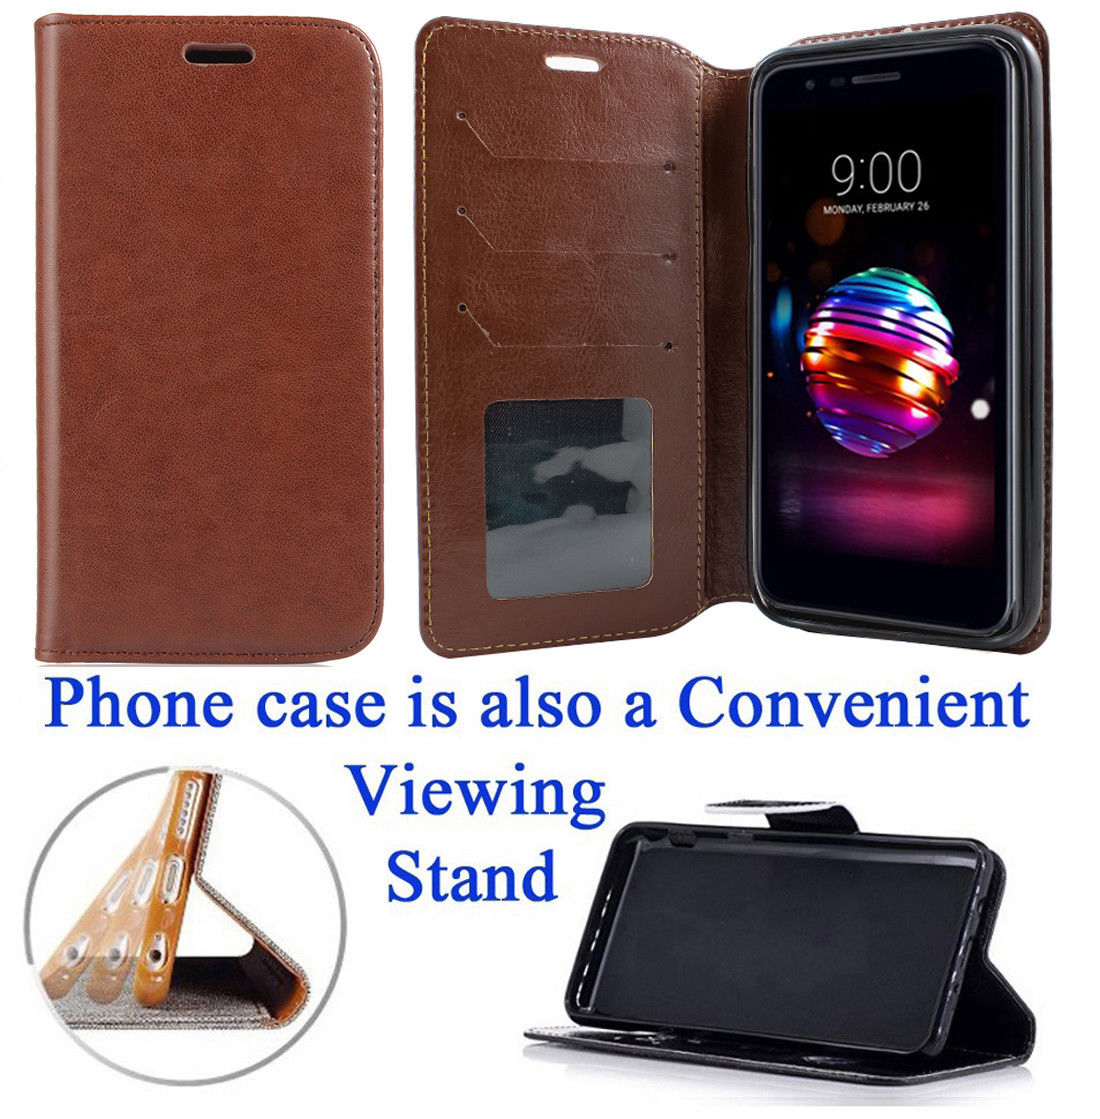 """for 5.3"""" LG K10 2018 K10+ PLUS K10a K30 Case Phone Case Designed Wallet Grip Textured Kick stand Hybrid Pouch Pocket Purse Screen Flip Cover Butterfly Daisy"""